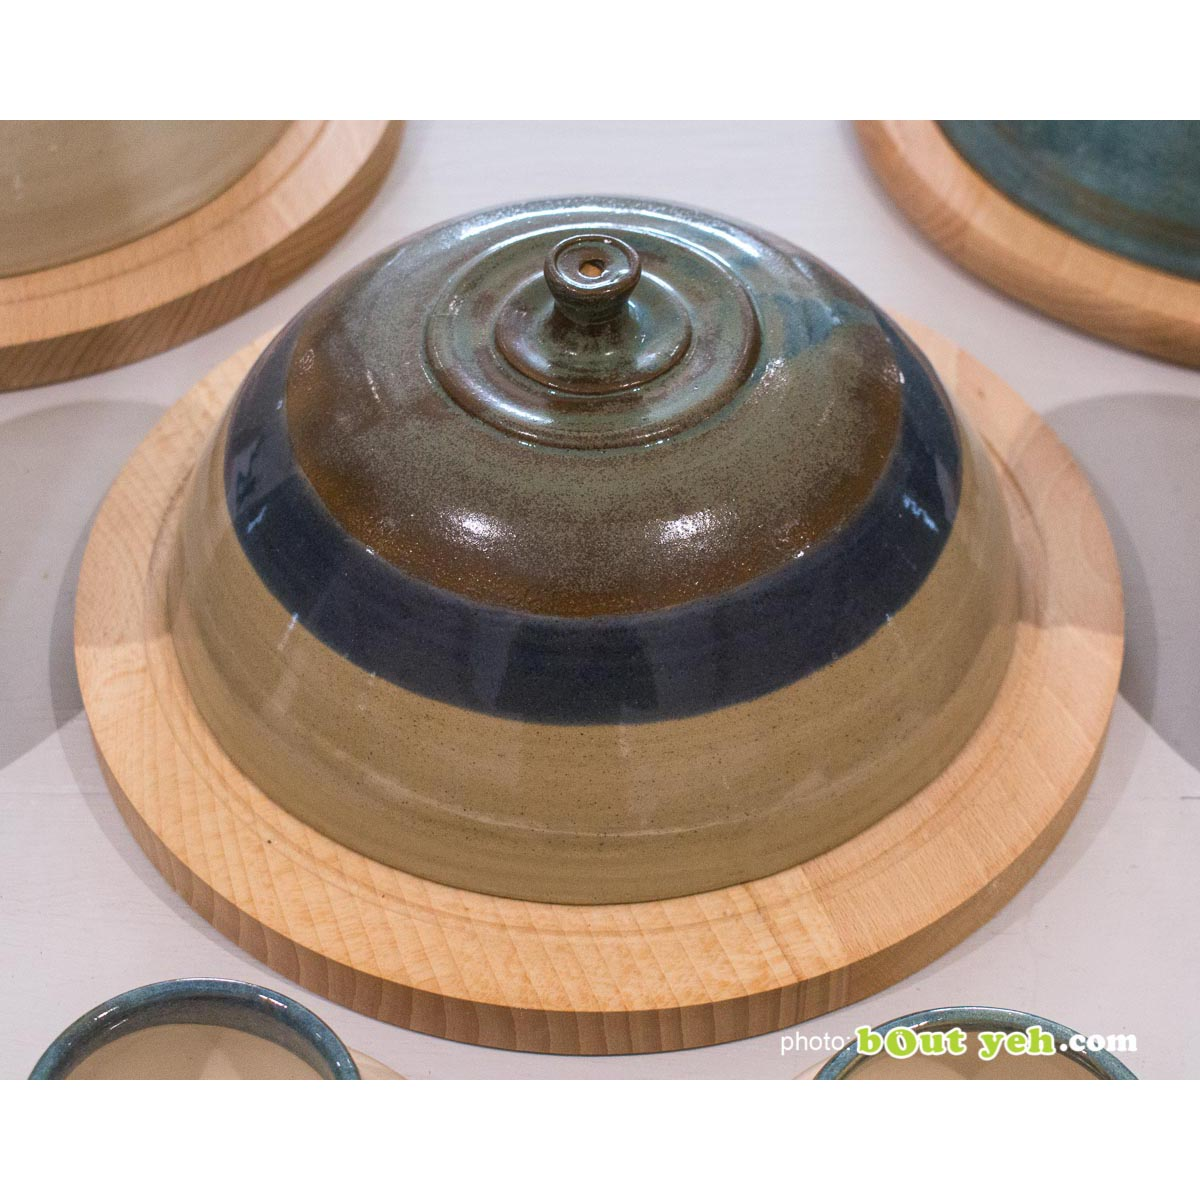 Green, blue and brown cheeseboard bell and board - contemporary hand made Irish pottery. Photo 1773